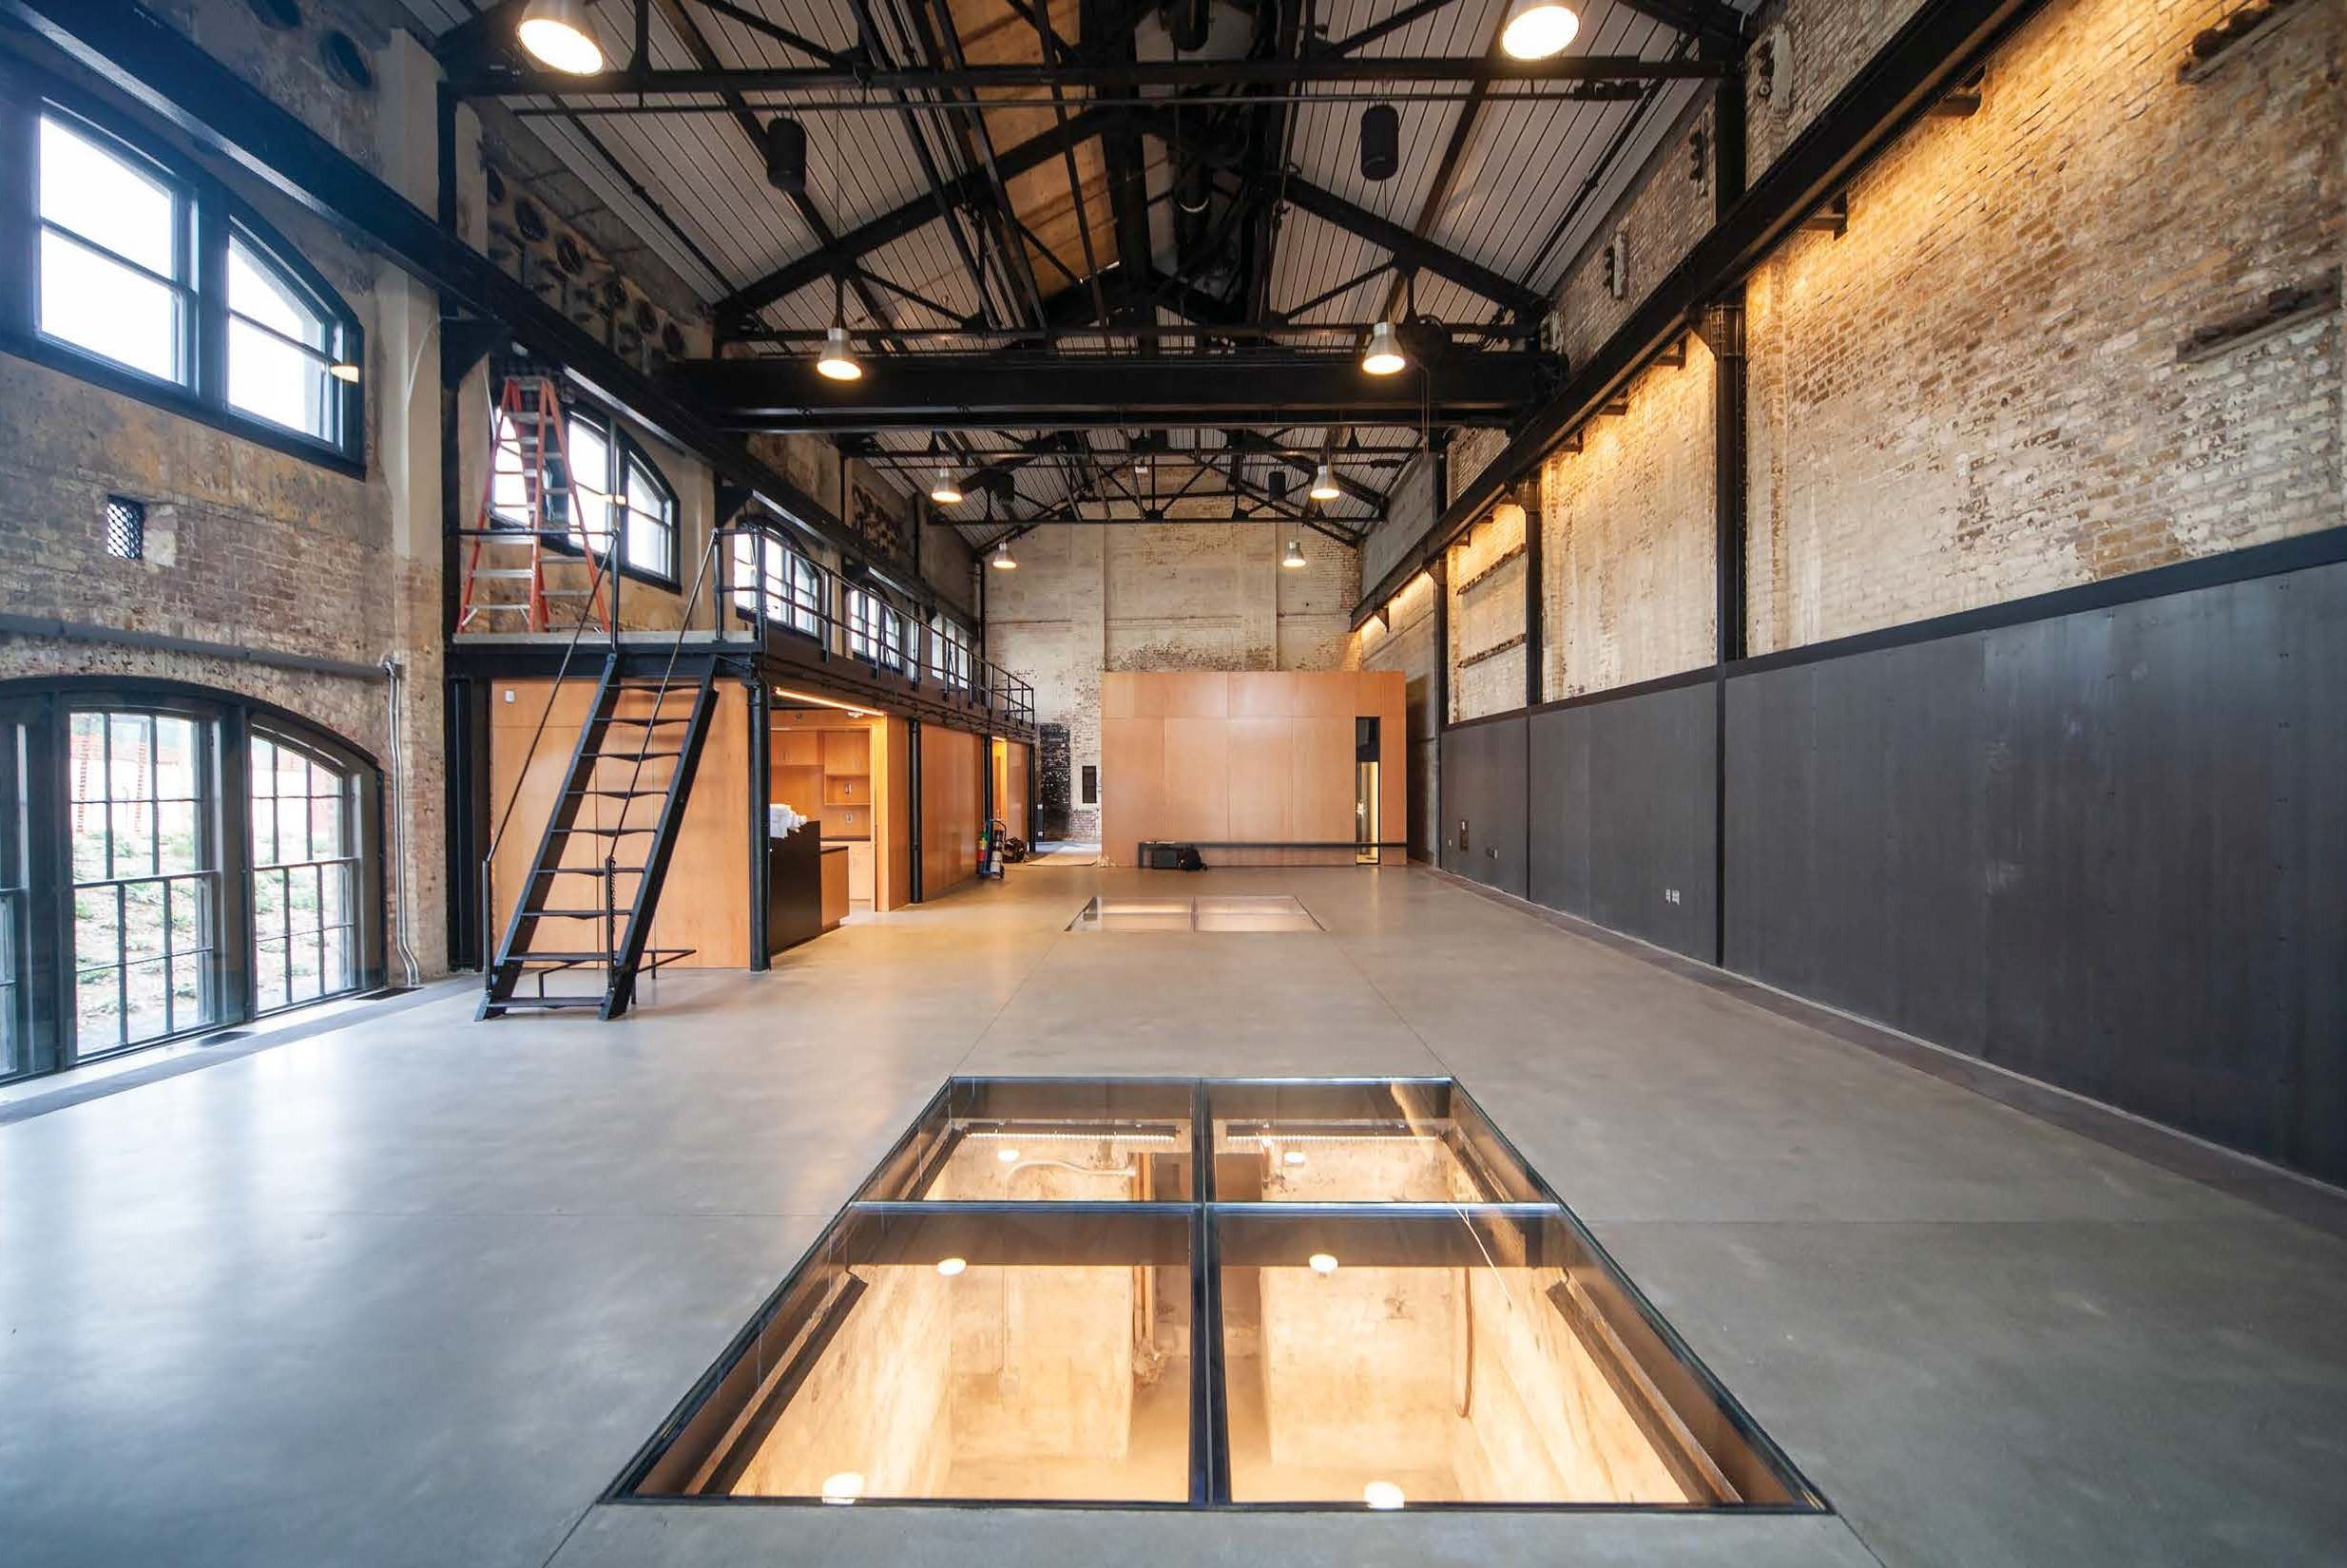 Image shows the Geneva Car Barn Interior Looking north from South wall Kitchen and Office. The ceili